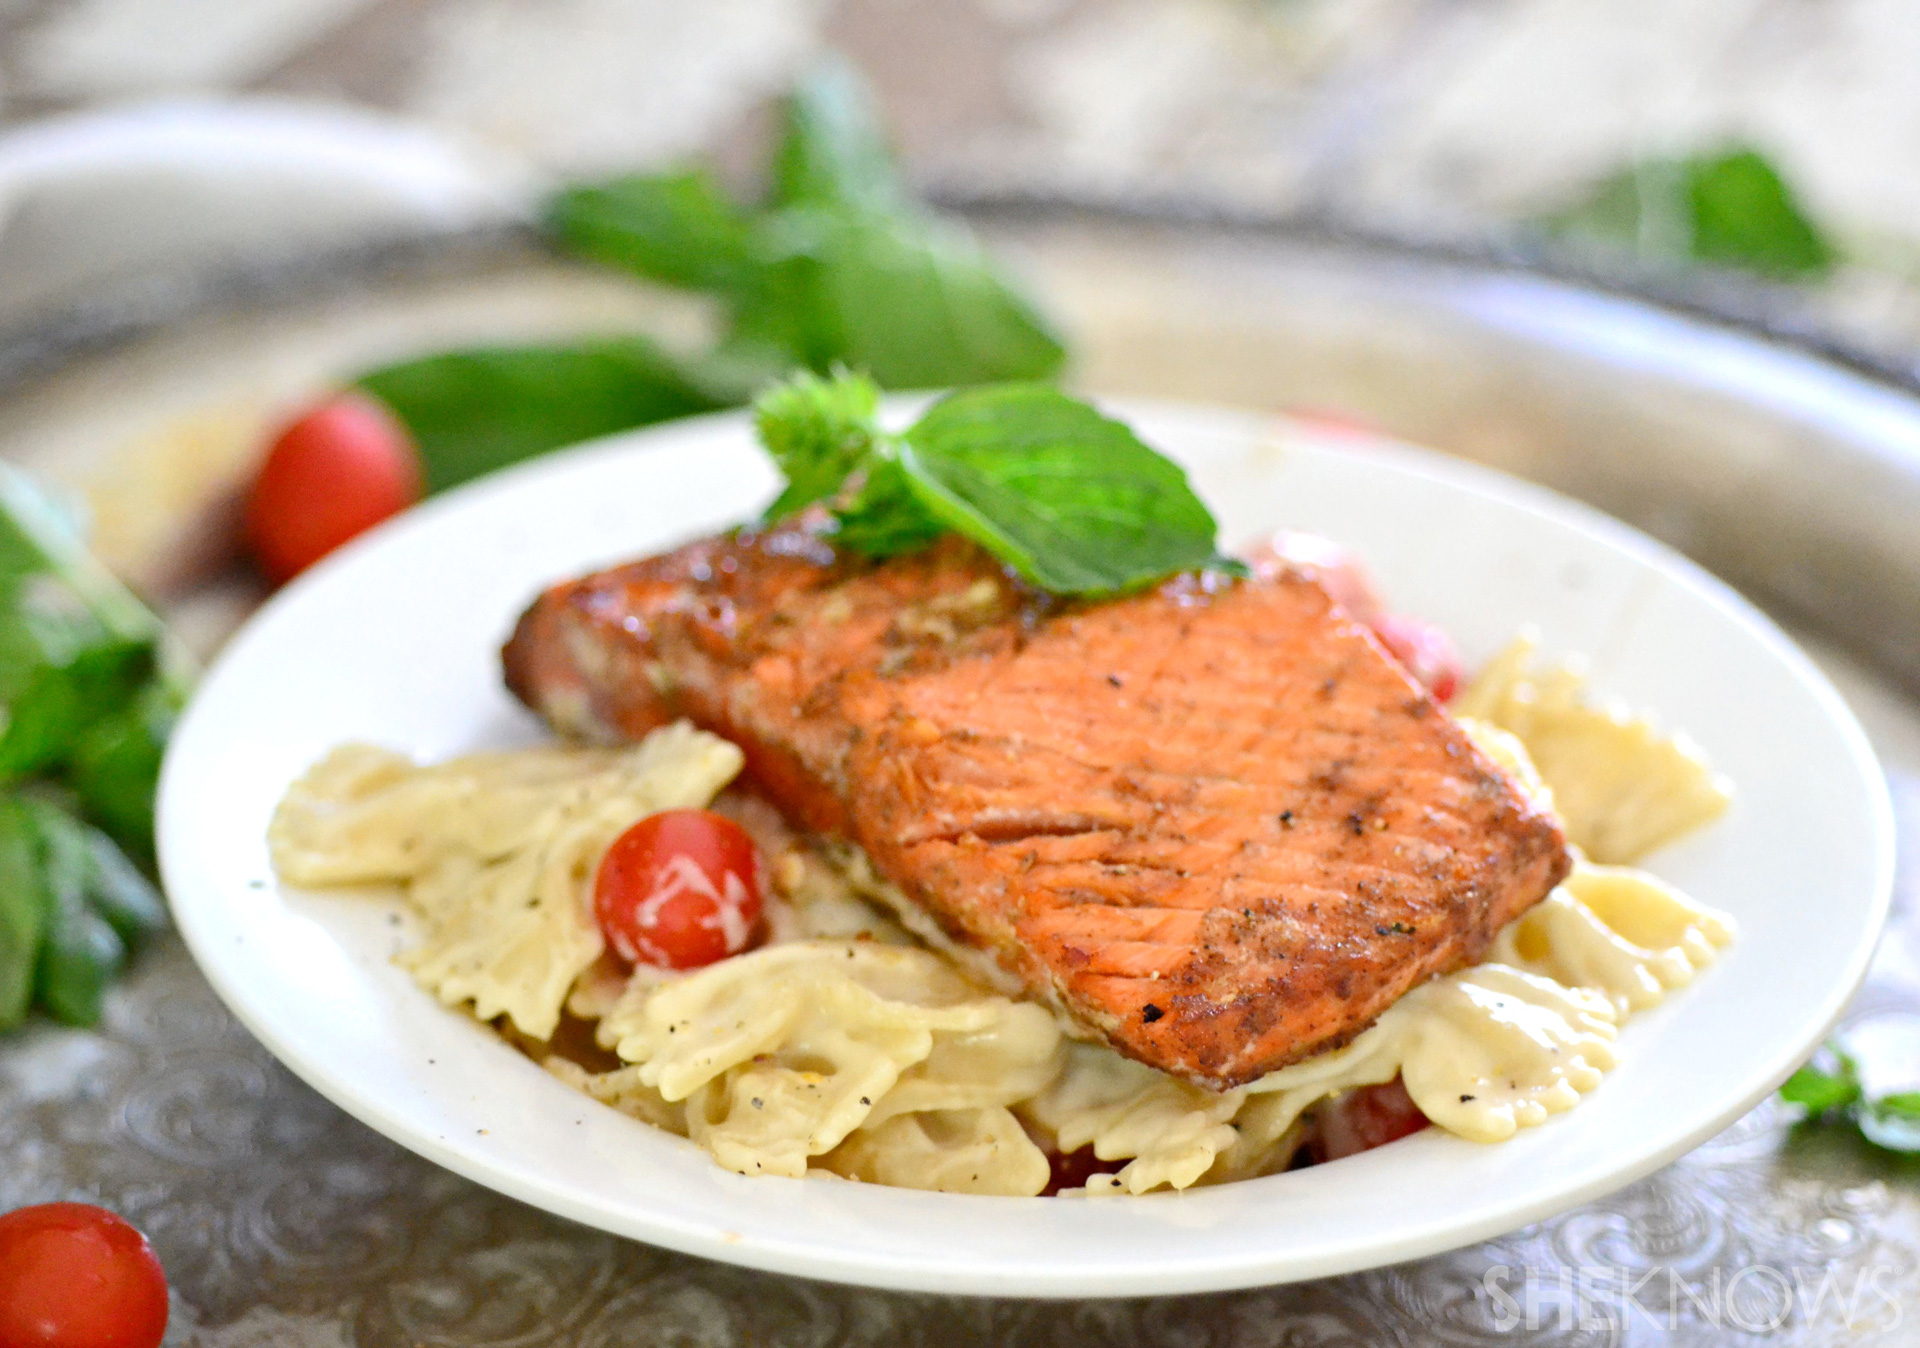 Blackened cajun salmon with creamy pasta